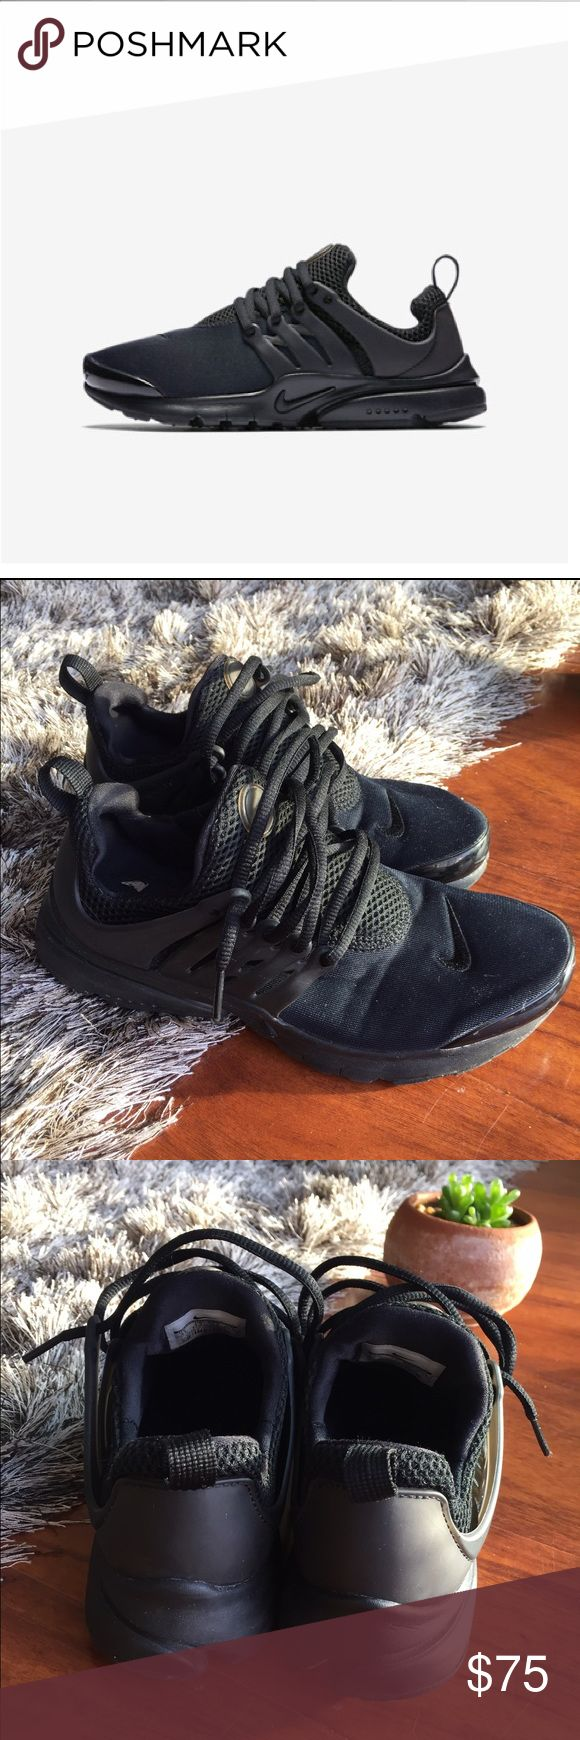 Nike Presto black on black - big kids size 5.5 Nike Presto black on black - big kids size 5Y (i wear 6.5 in women's) - no trades GREAT CONDITION Nike Shoes Sneakers